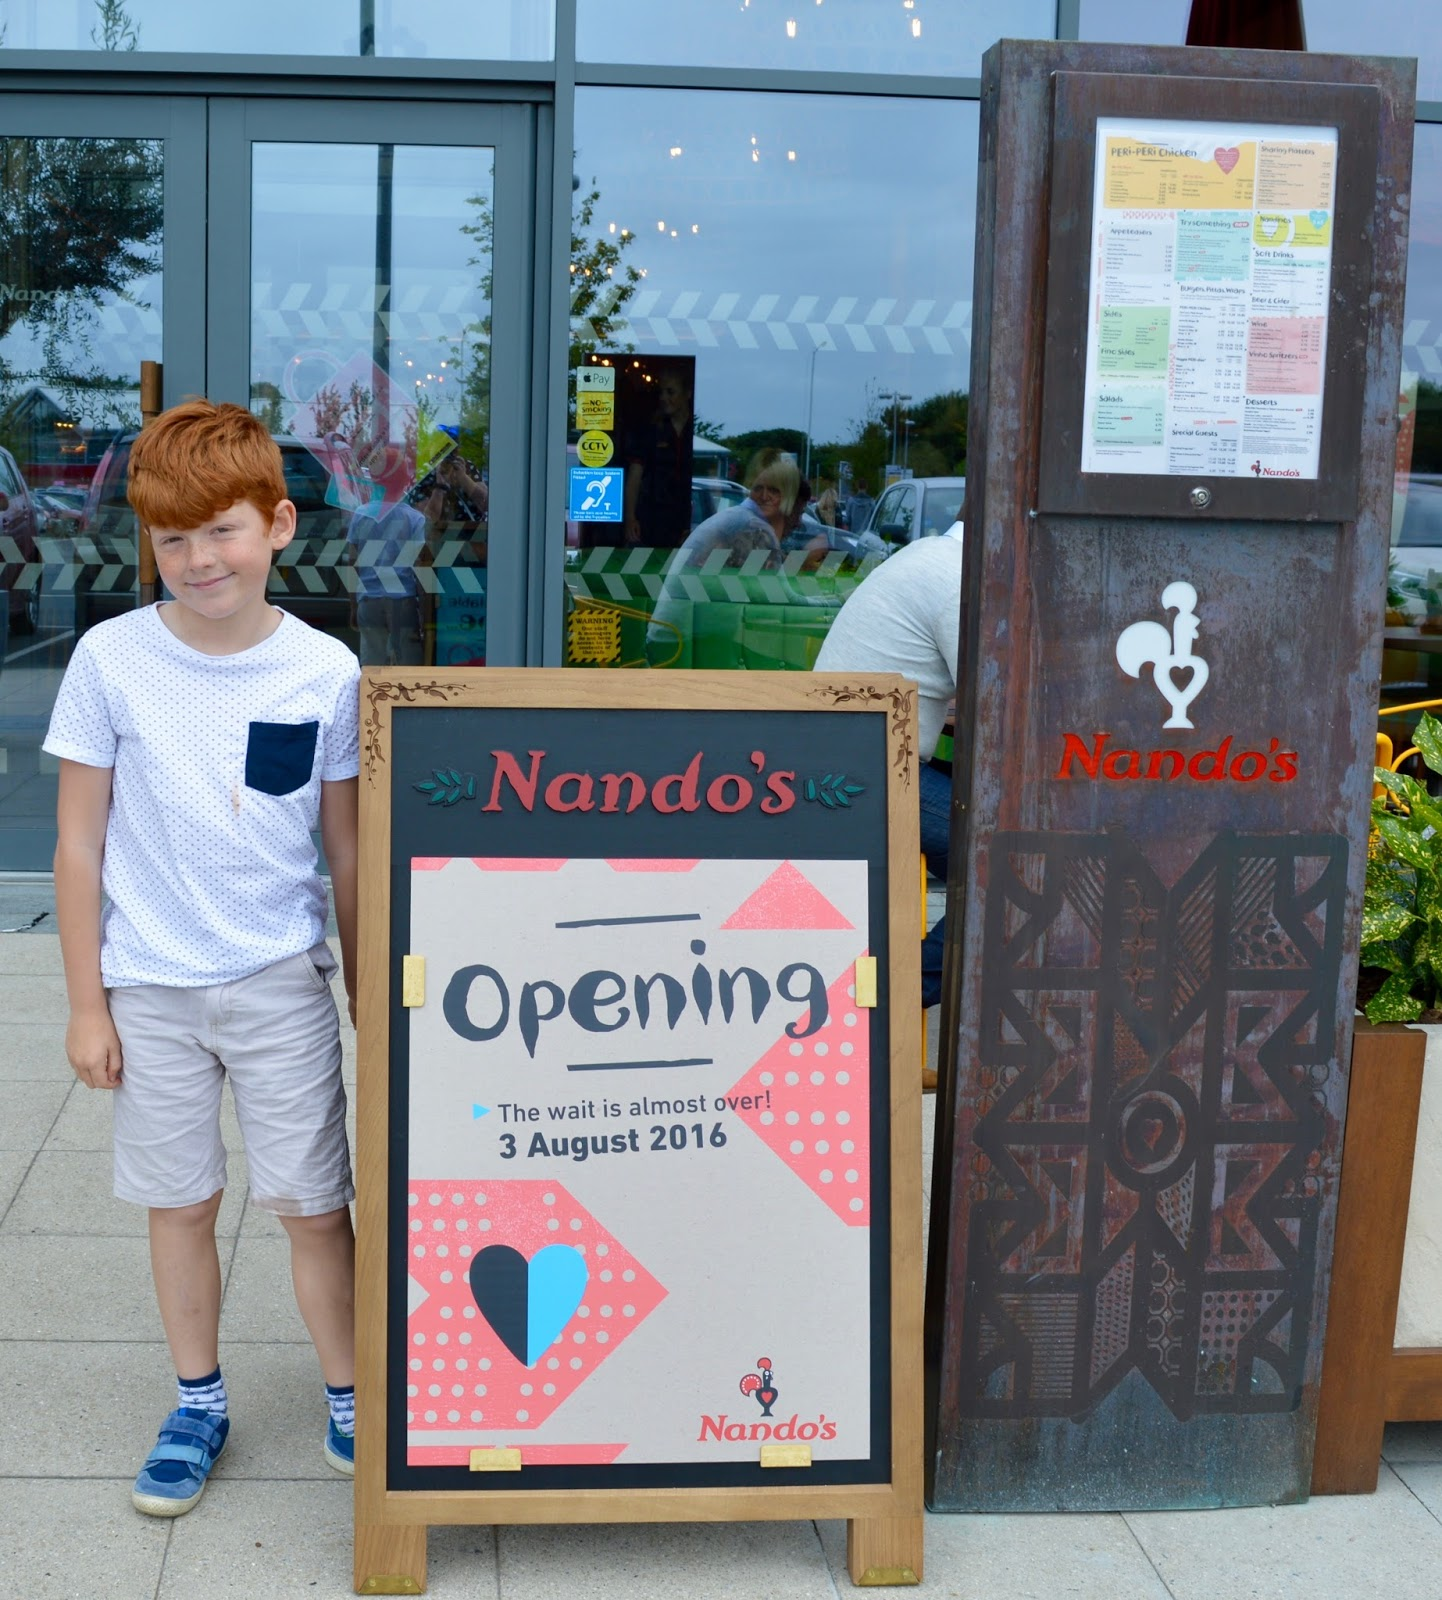 Nando's Cramlington Manor Walks - Opens 3rd August 2016. Children's menu review.